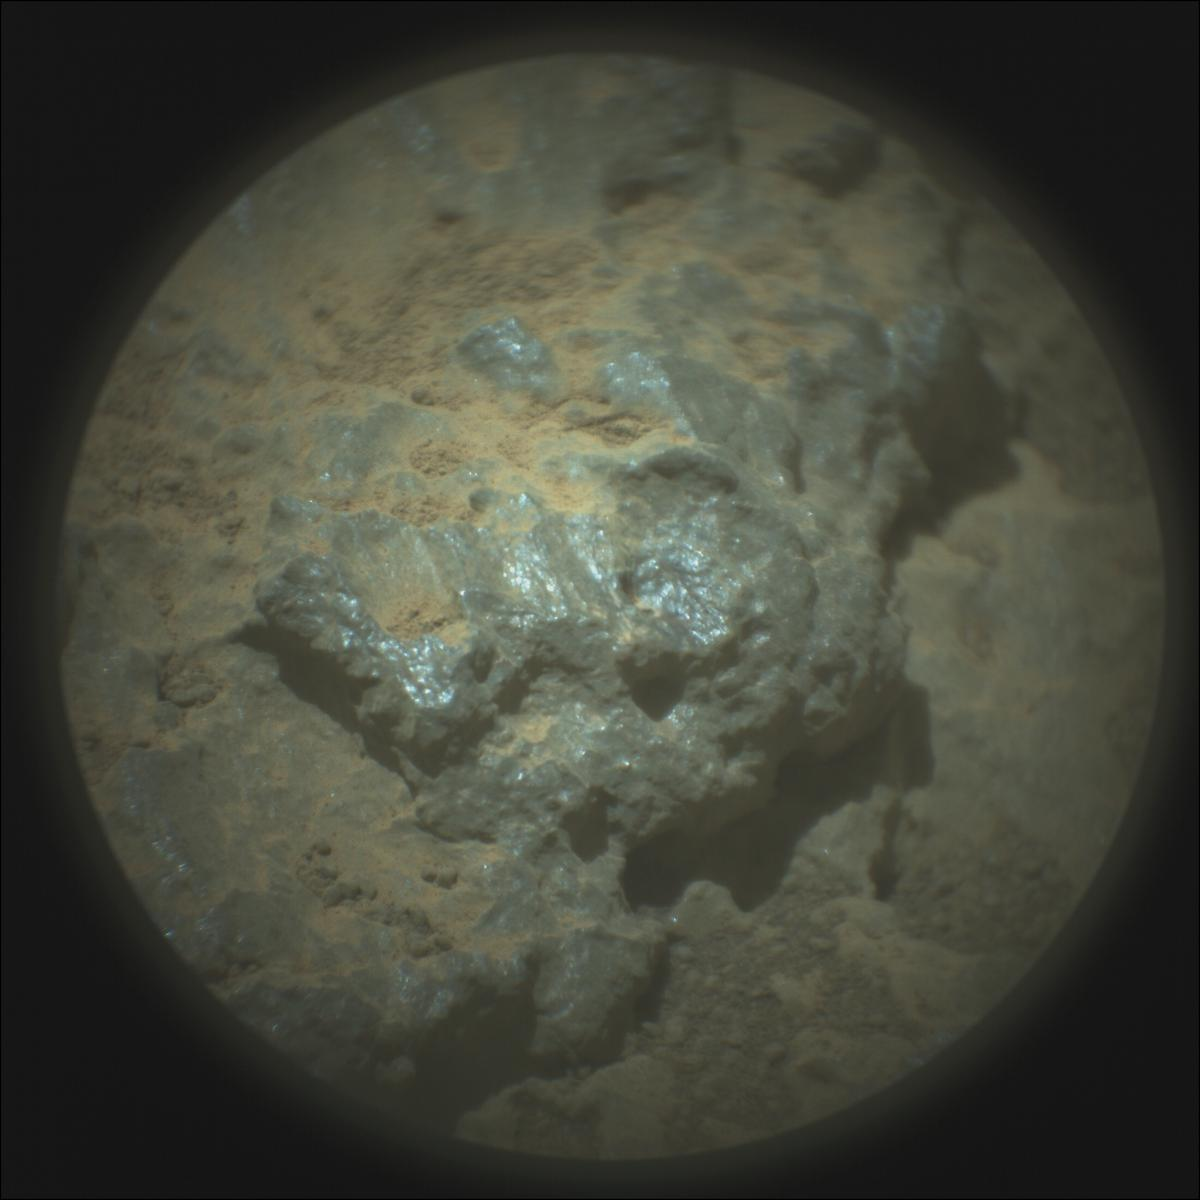 This image was taken by SUPERCAM_RMI onboard NASA's Mars rover Perseverance on Sol 145